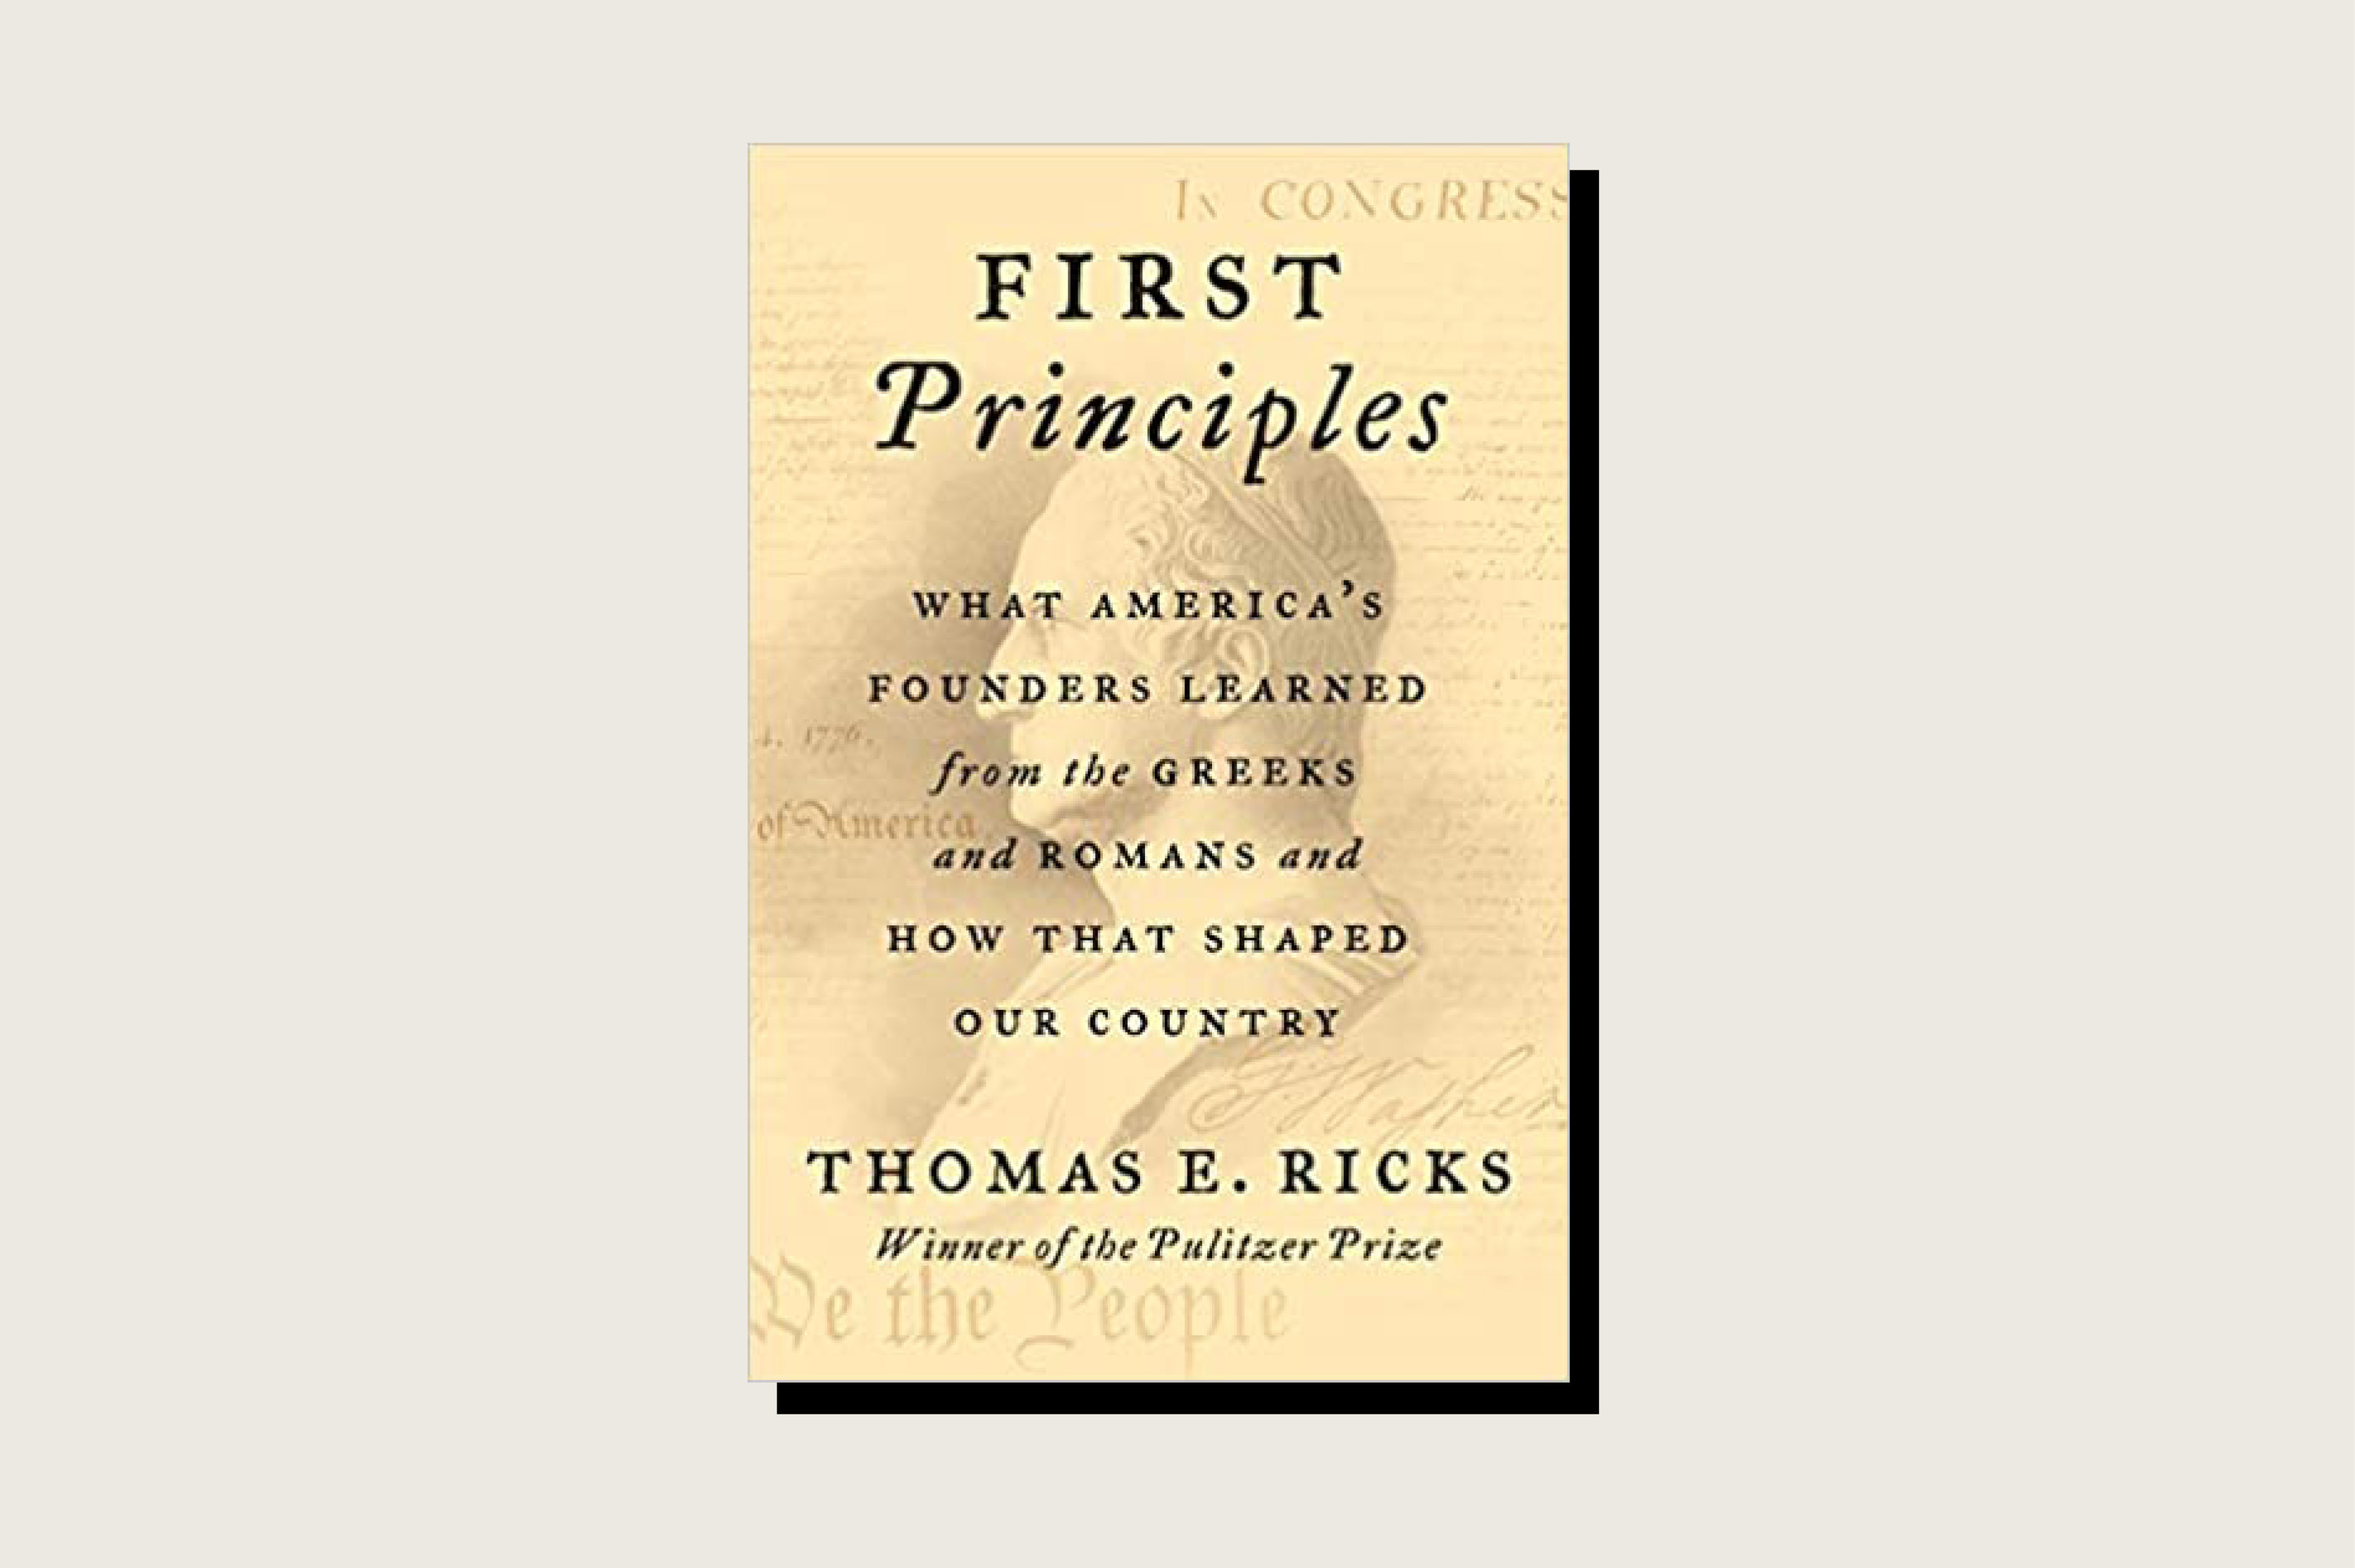 First Principles: What America's Founders Learned From the Greeks and Romans and How That Shaped Our Country, Thomas E. Ricks, Harper, 416 pp., .99, November 2020